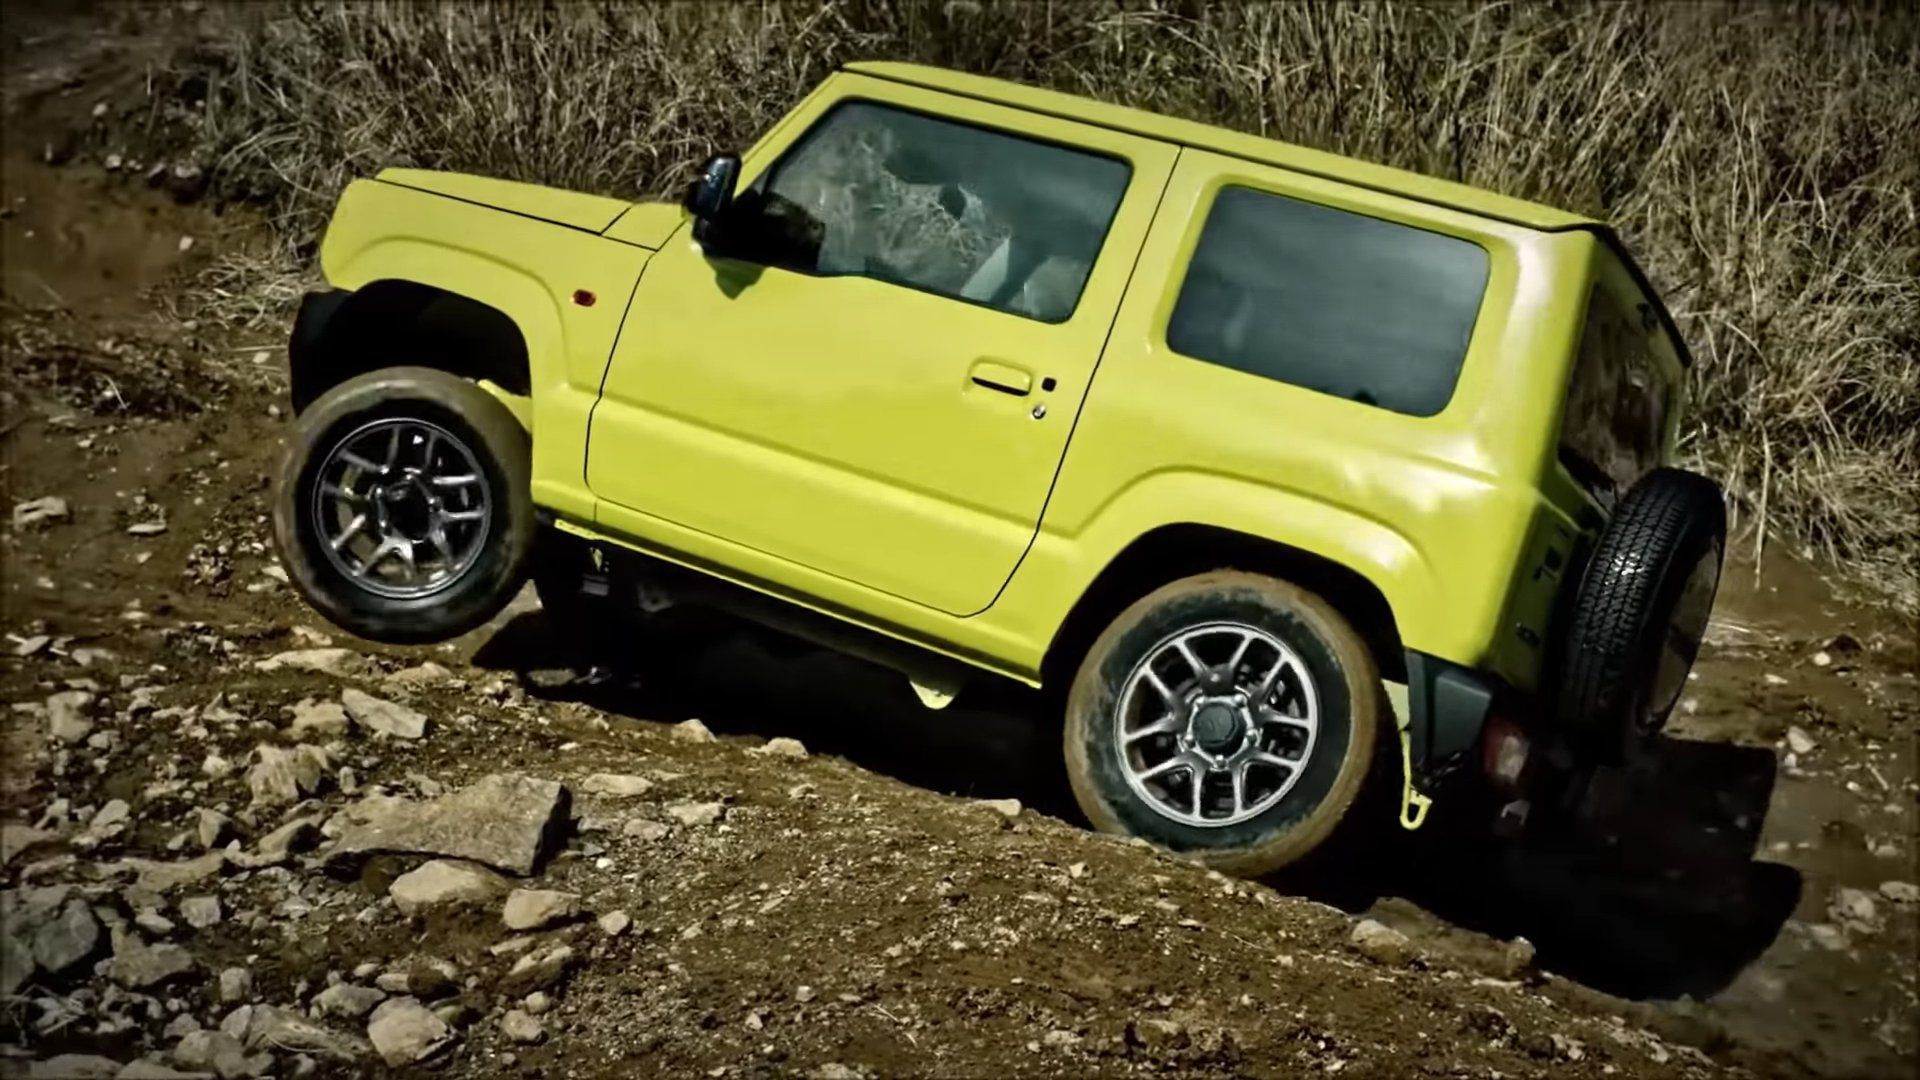 Yellow-green Jimny going to up